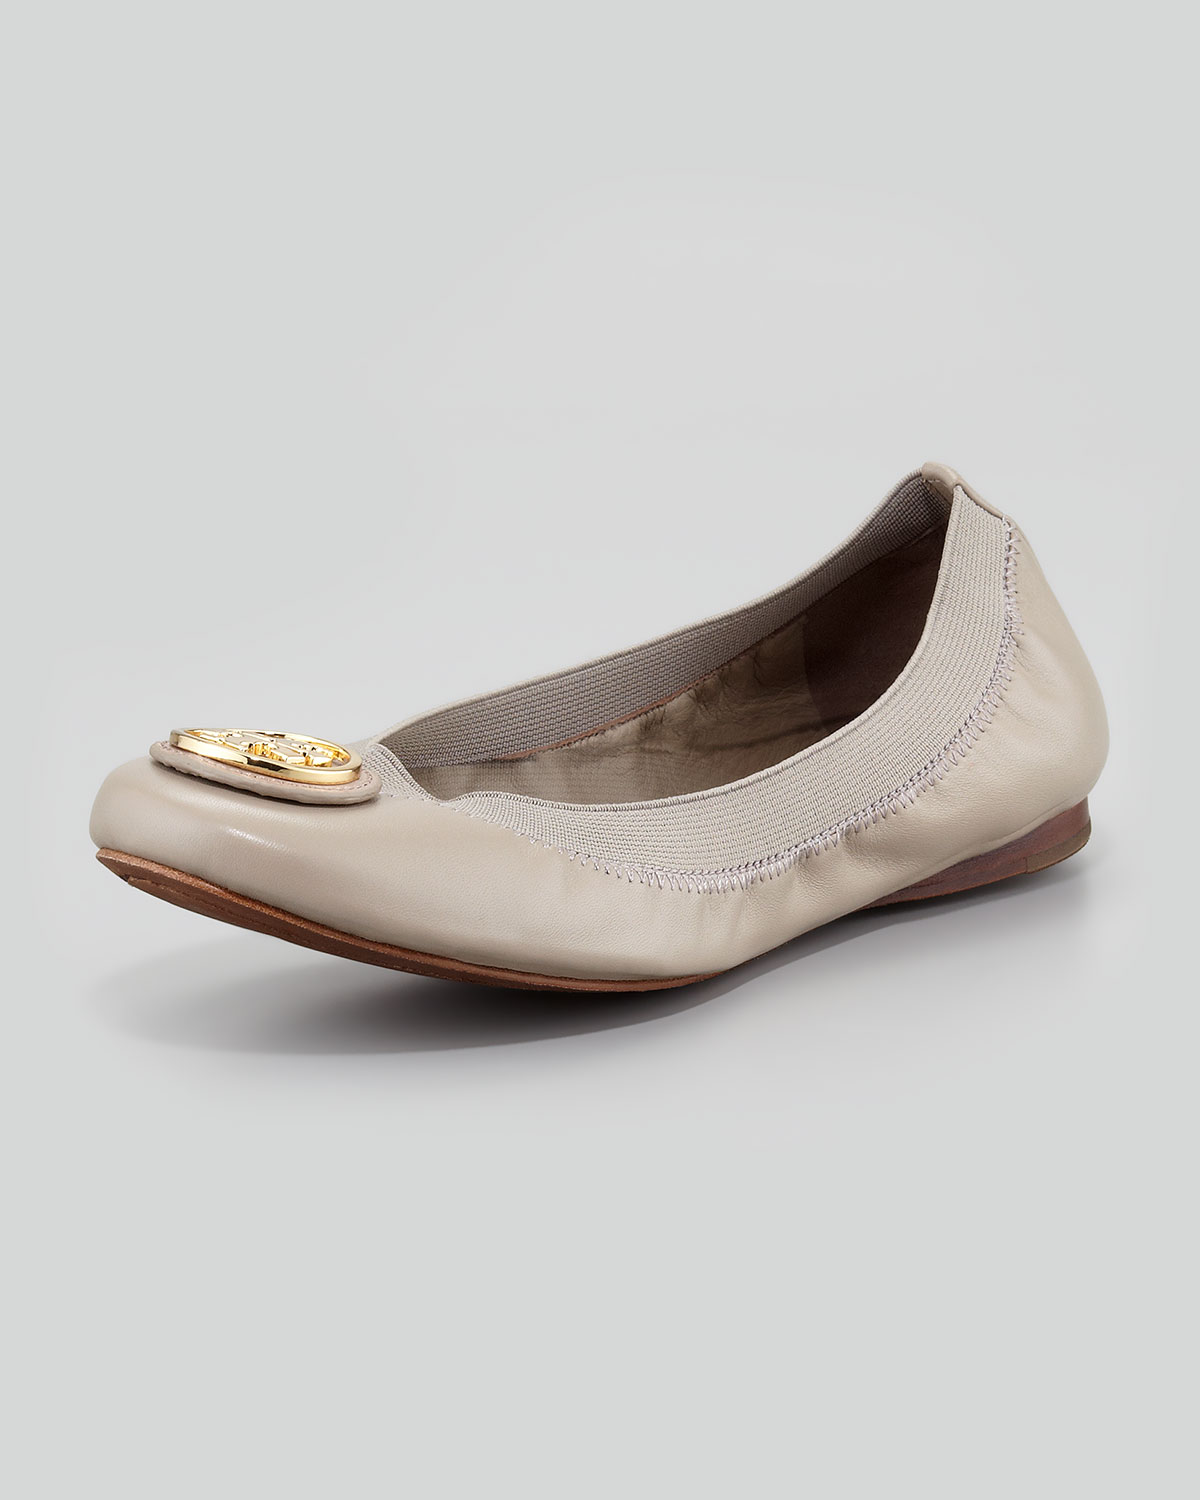 tory burch caroline 2 leather stretch ballerina flats dust storm in gray dust storm lyst. Black Bedroom Furniture Sets. Home Design Ideas